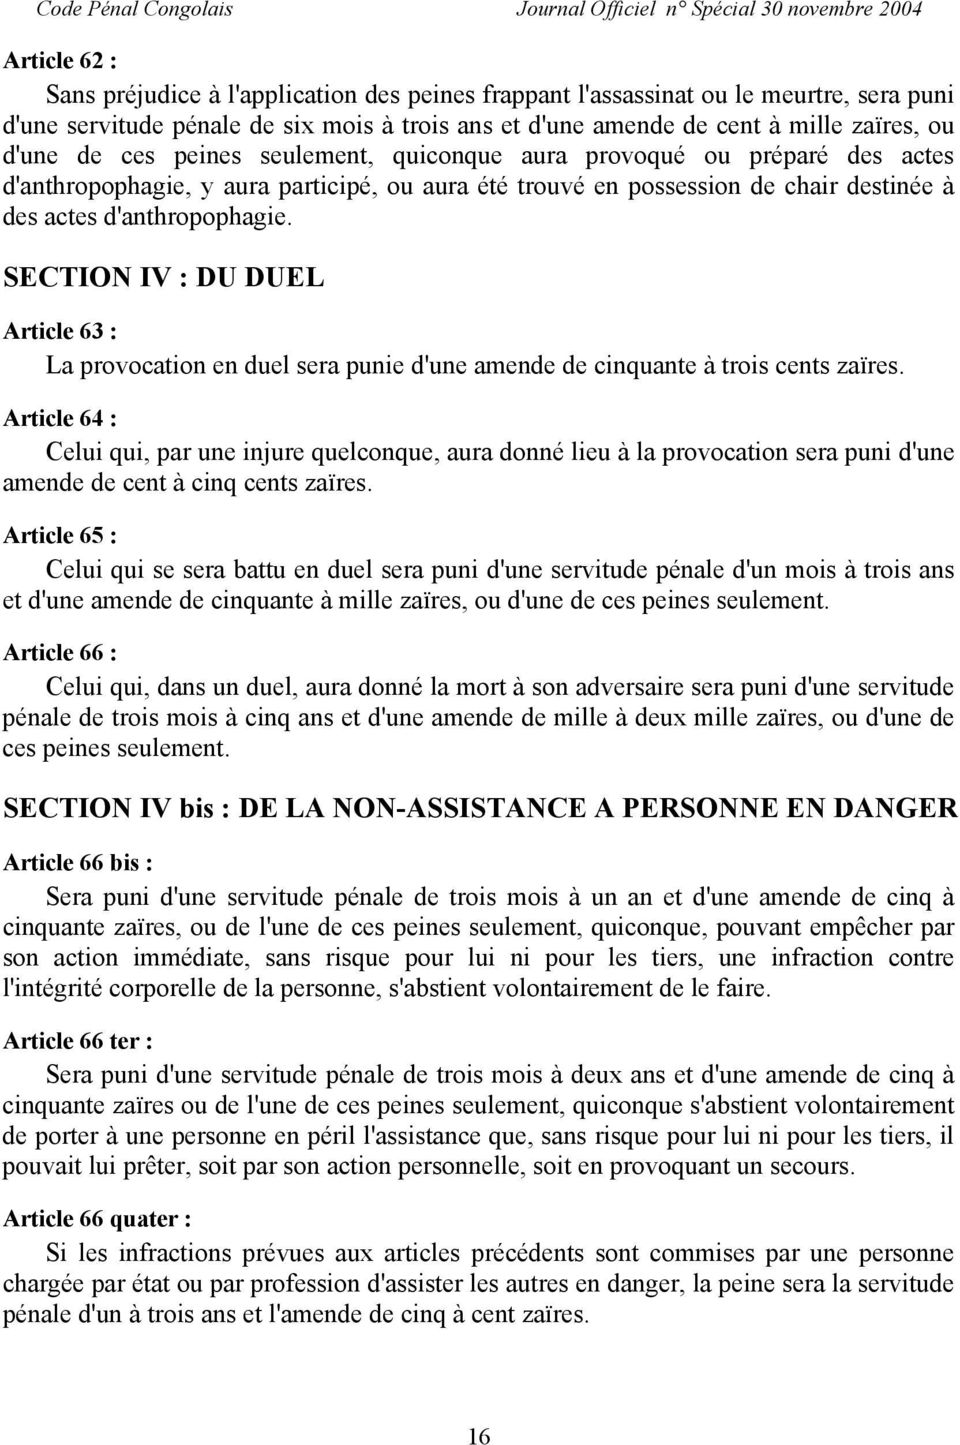 SECTION IV : DU DUEL Article 63 : La provocation en duel sera punie d'une amende de cinquante à trois cents zaïres.